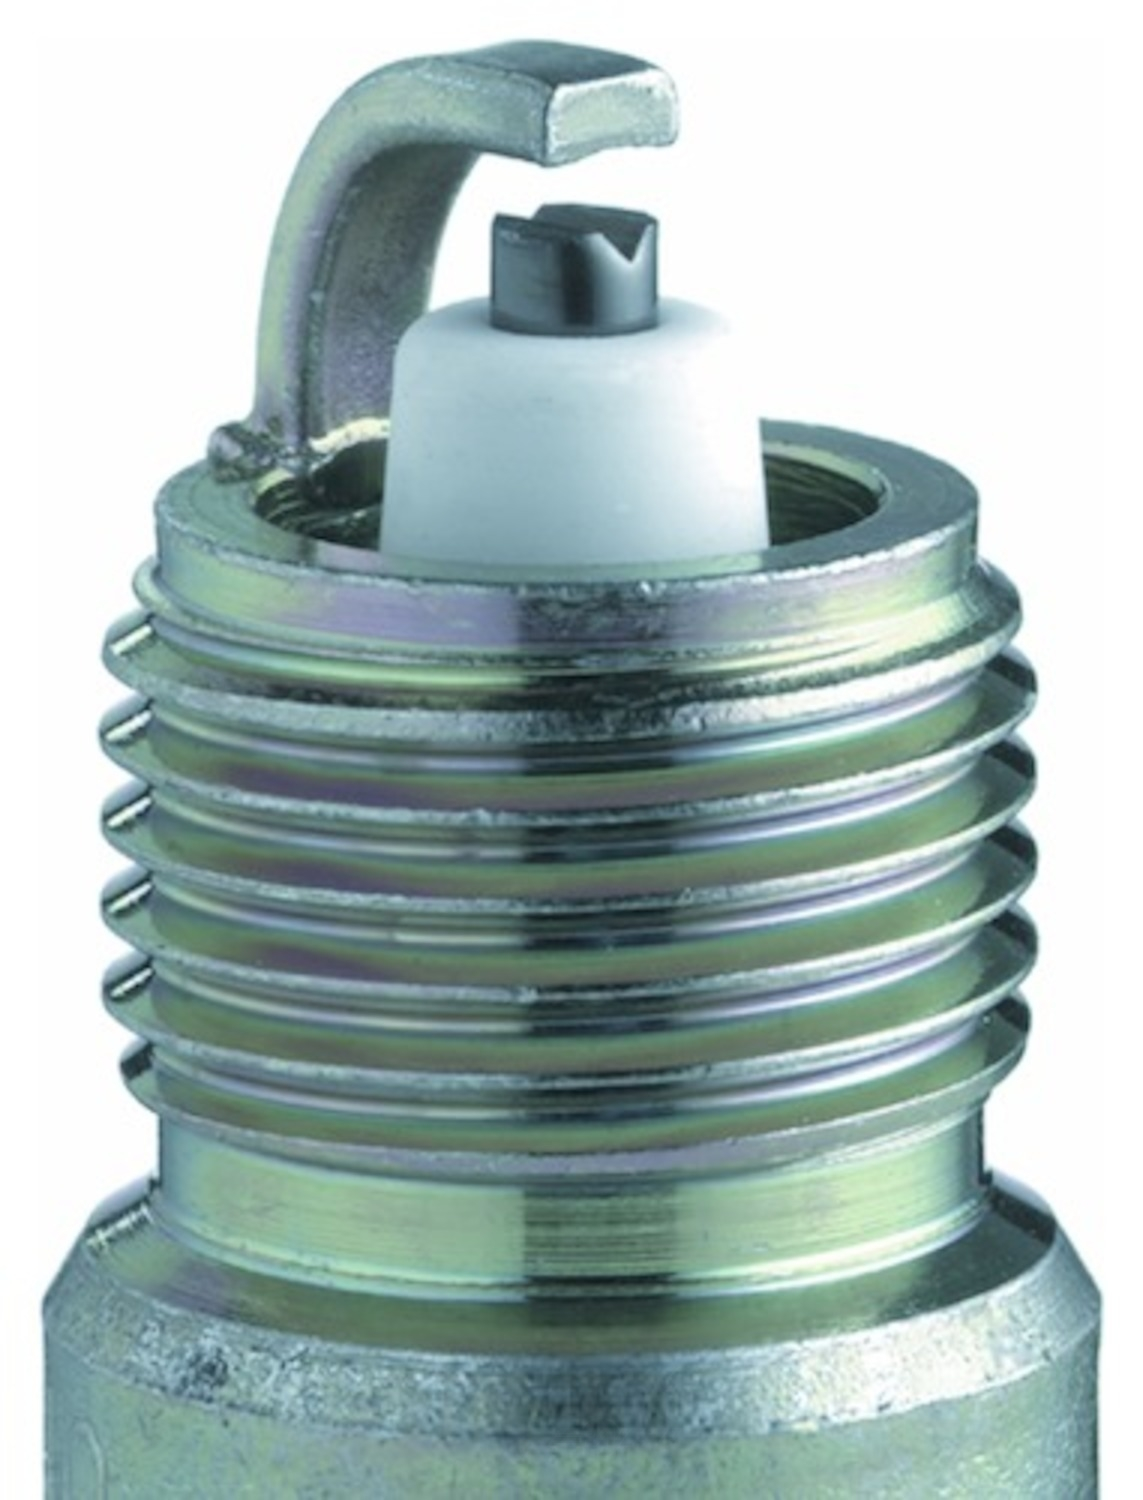 NGK CANADA STOCK NUMBERS - V-Power Spark Plug - N30 6630